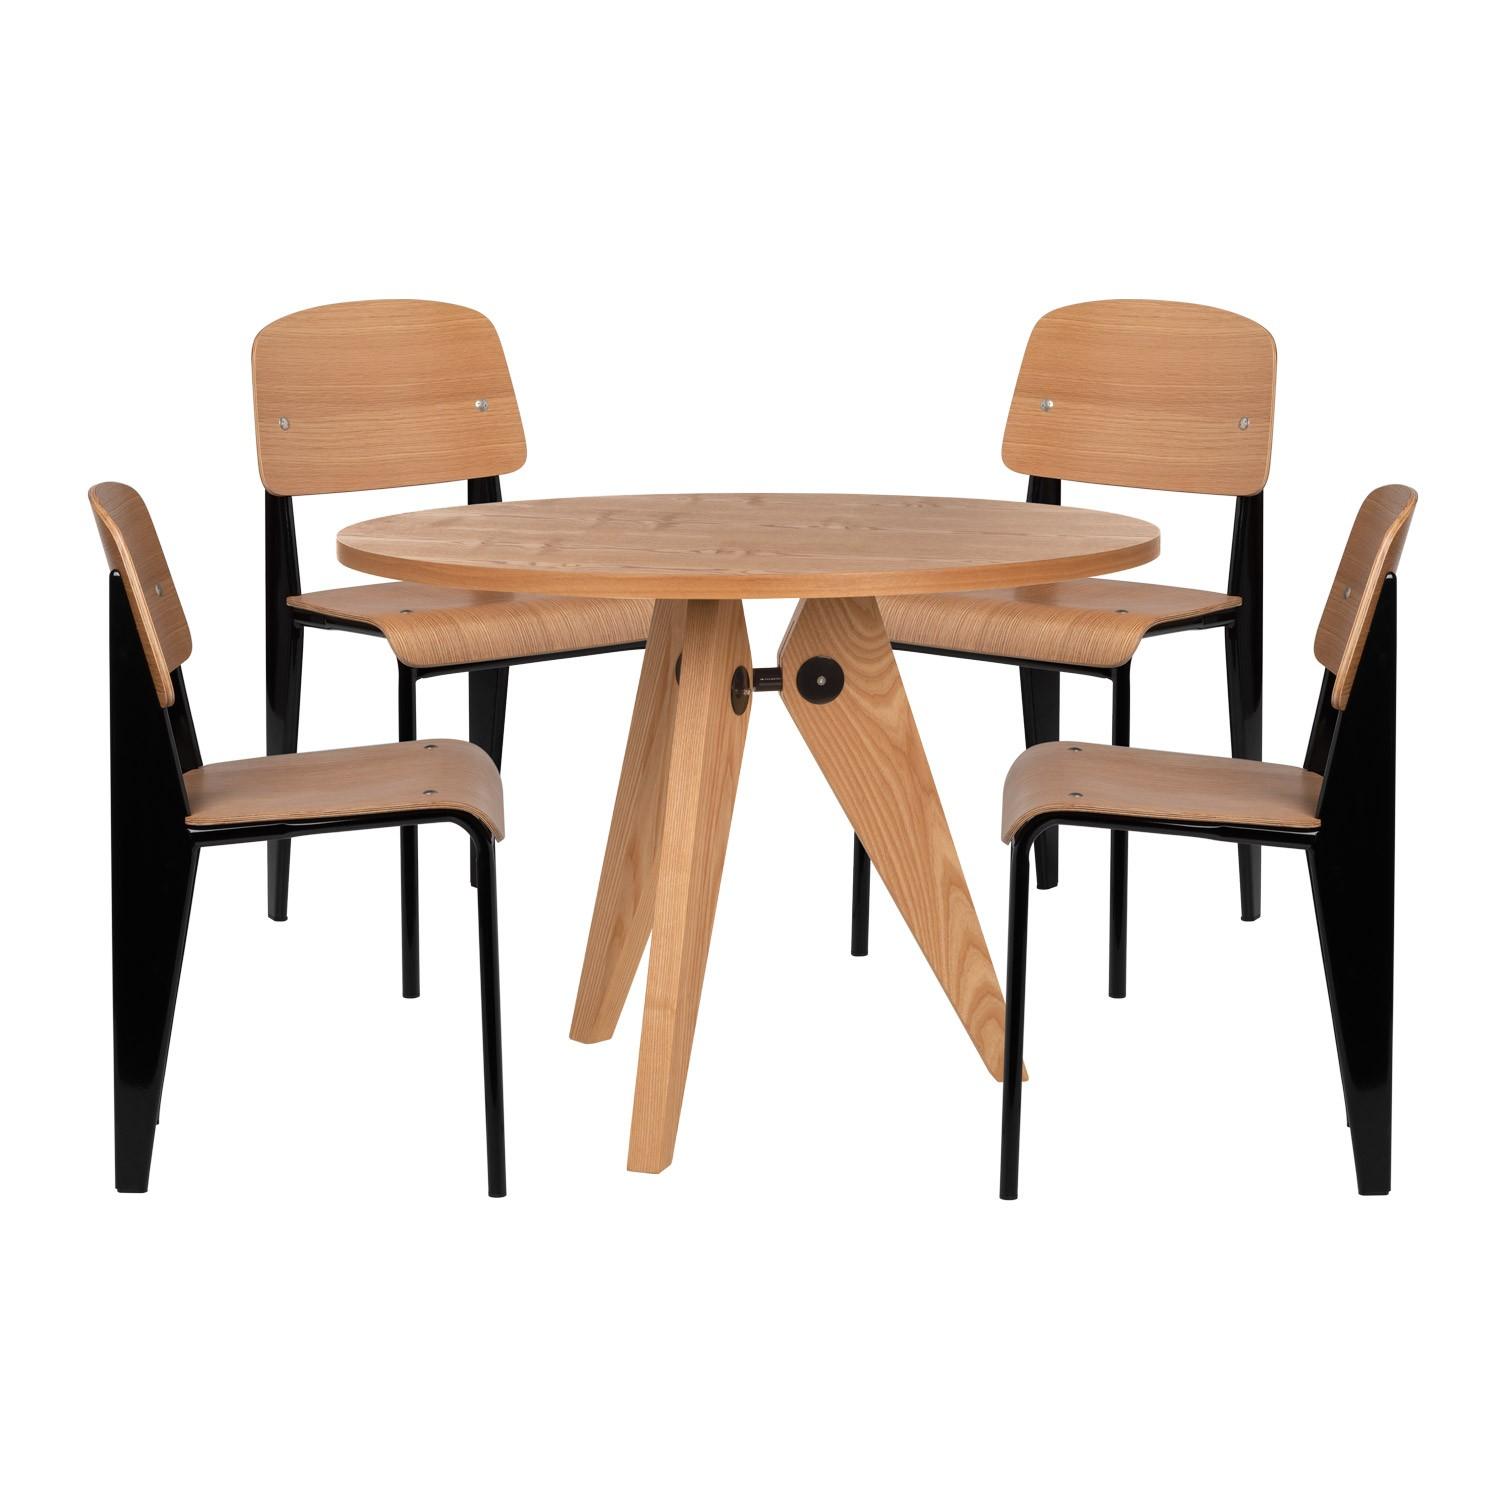 Pack Of 4 And Chairs 1 And Wooden Table Sklum